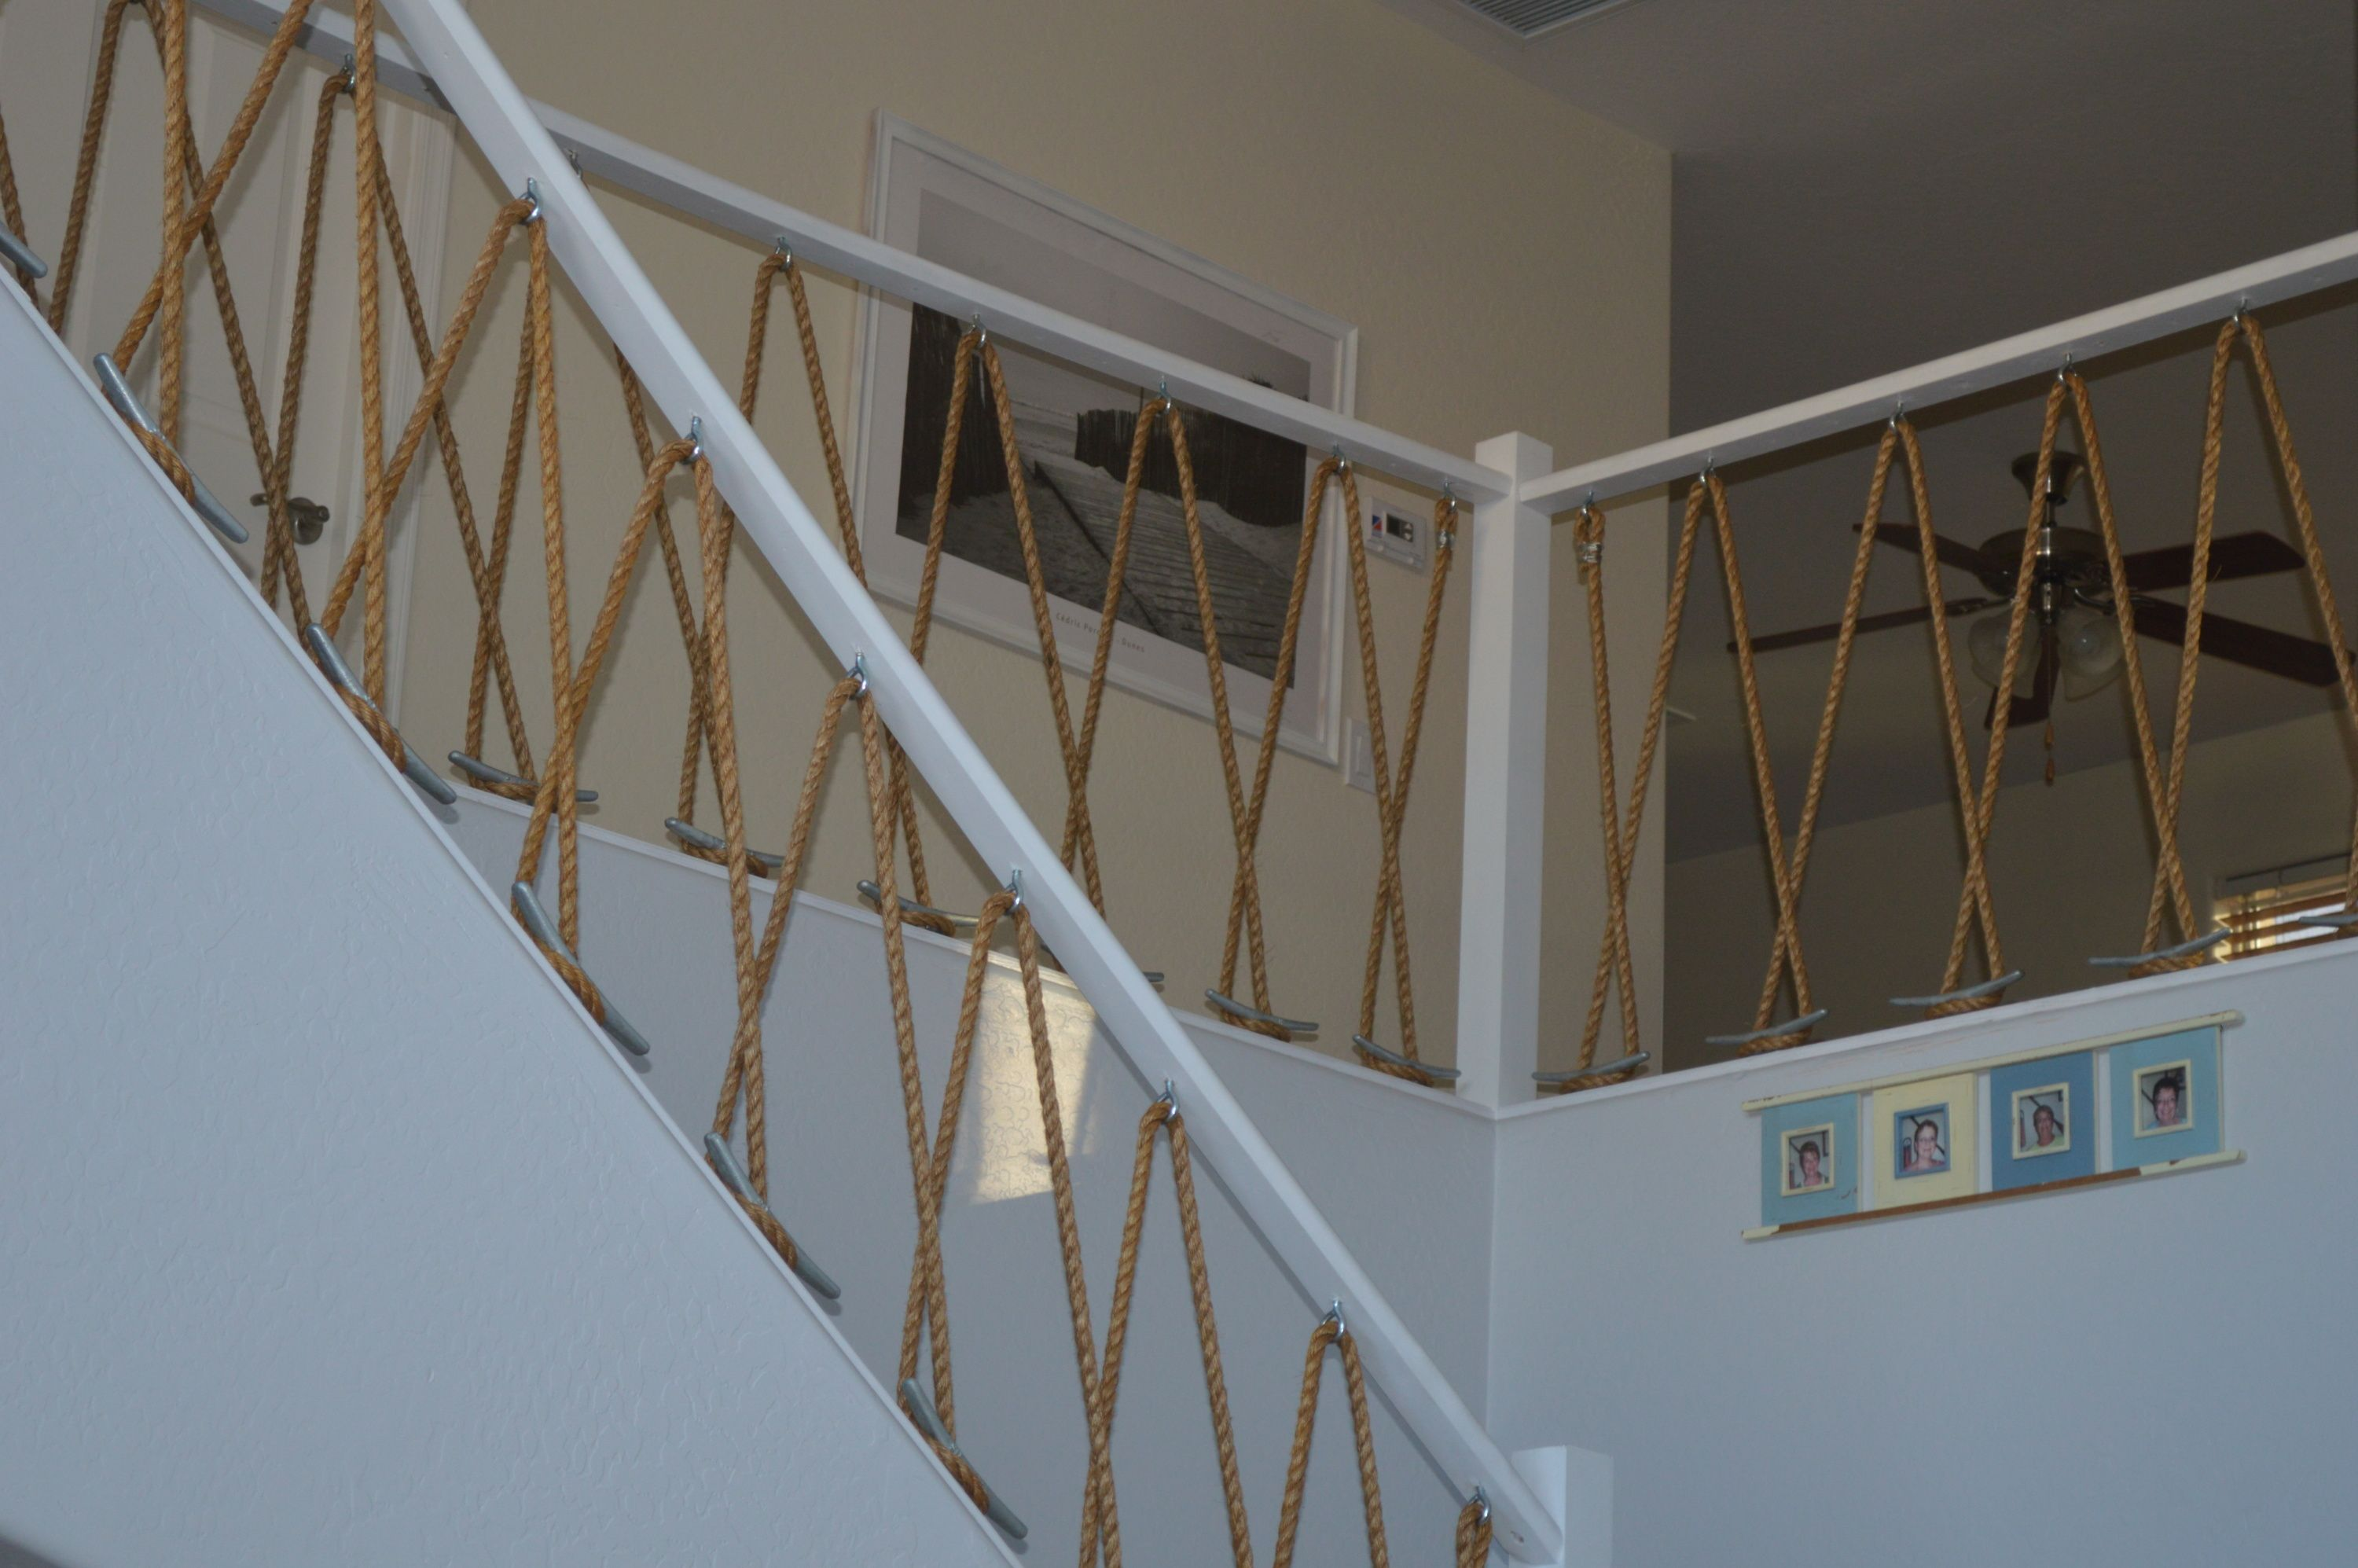 Best Nautical Stairway Rebulit The Bannisters With 5 8 Manila 400 x 300